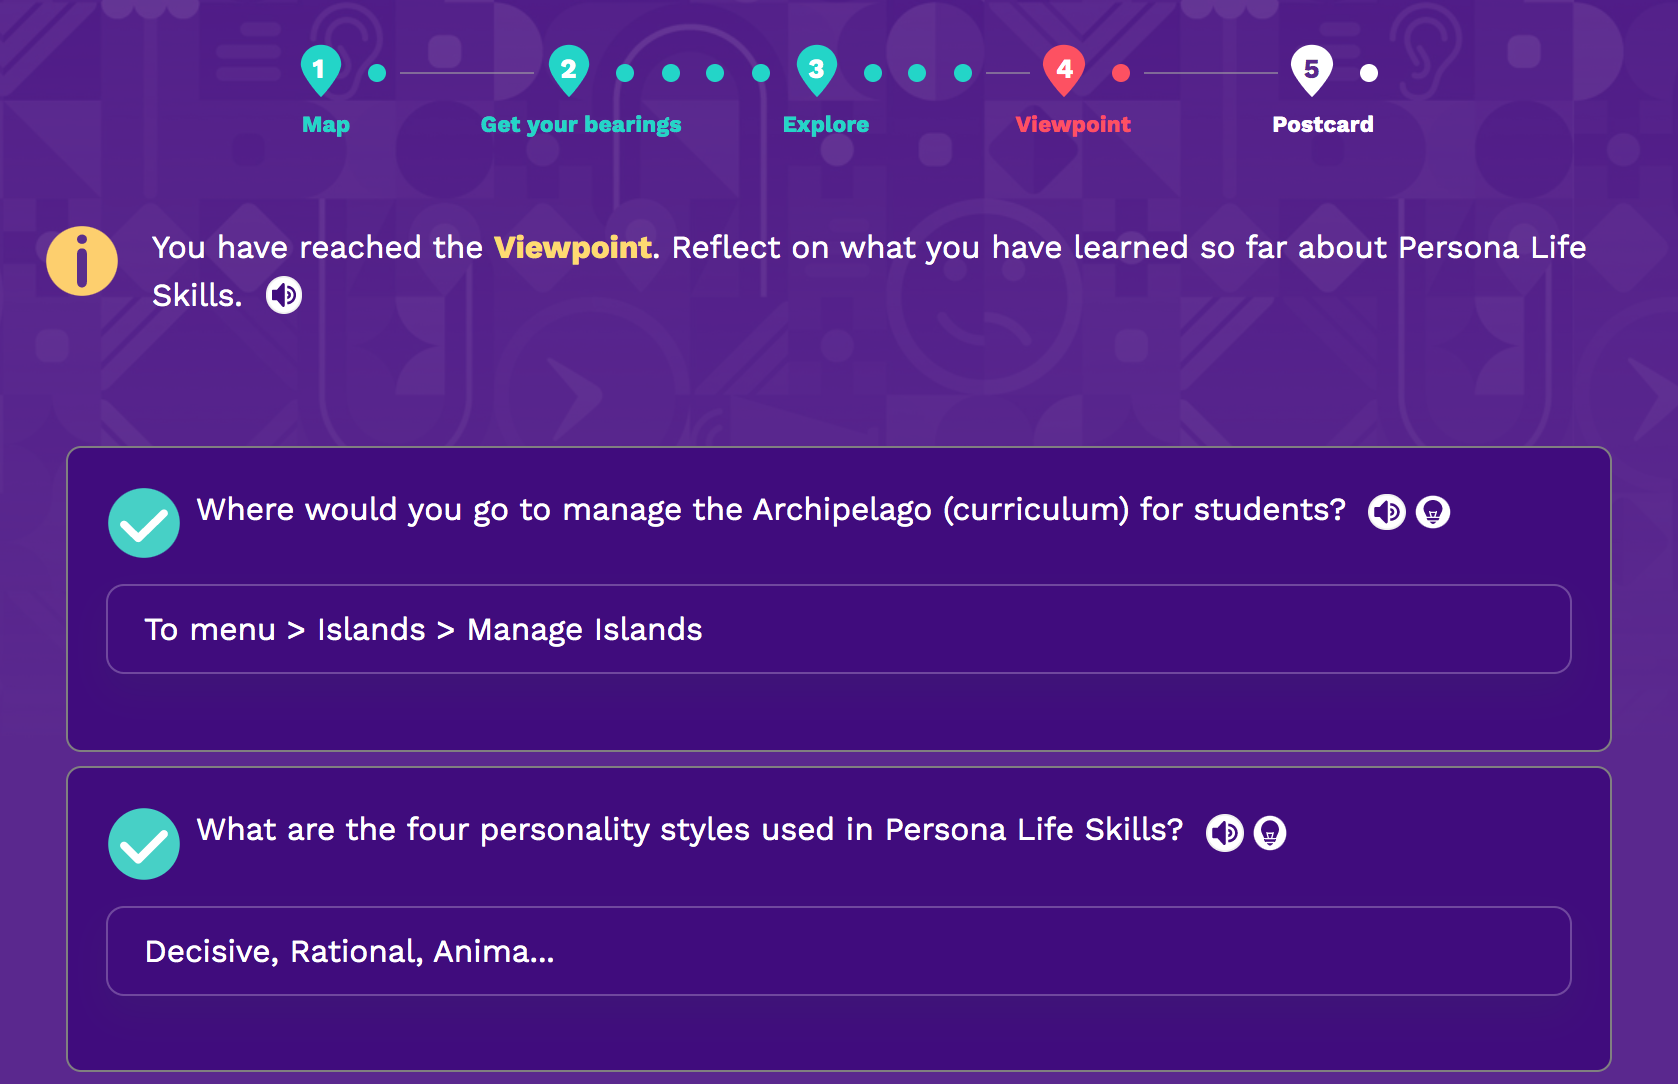 Persona Life Skills - Teacher Onboarding, Viewpoint